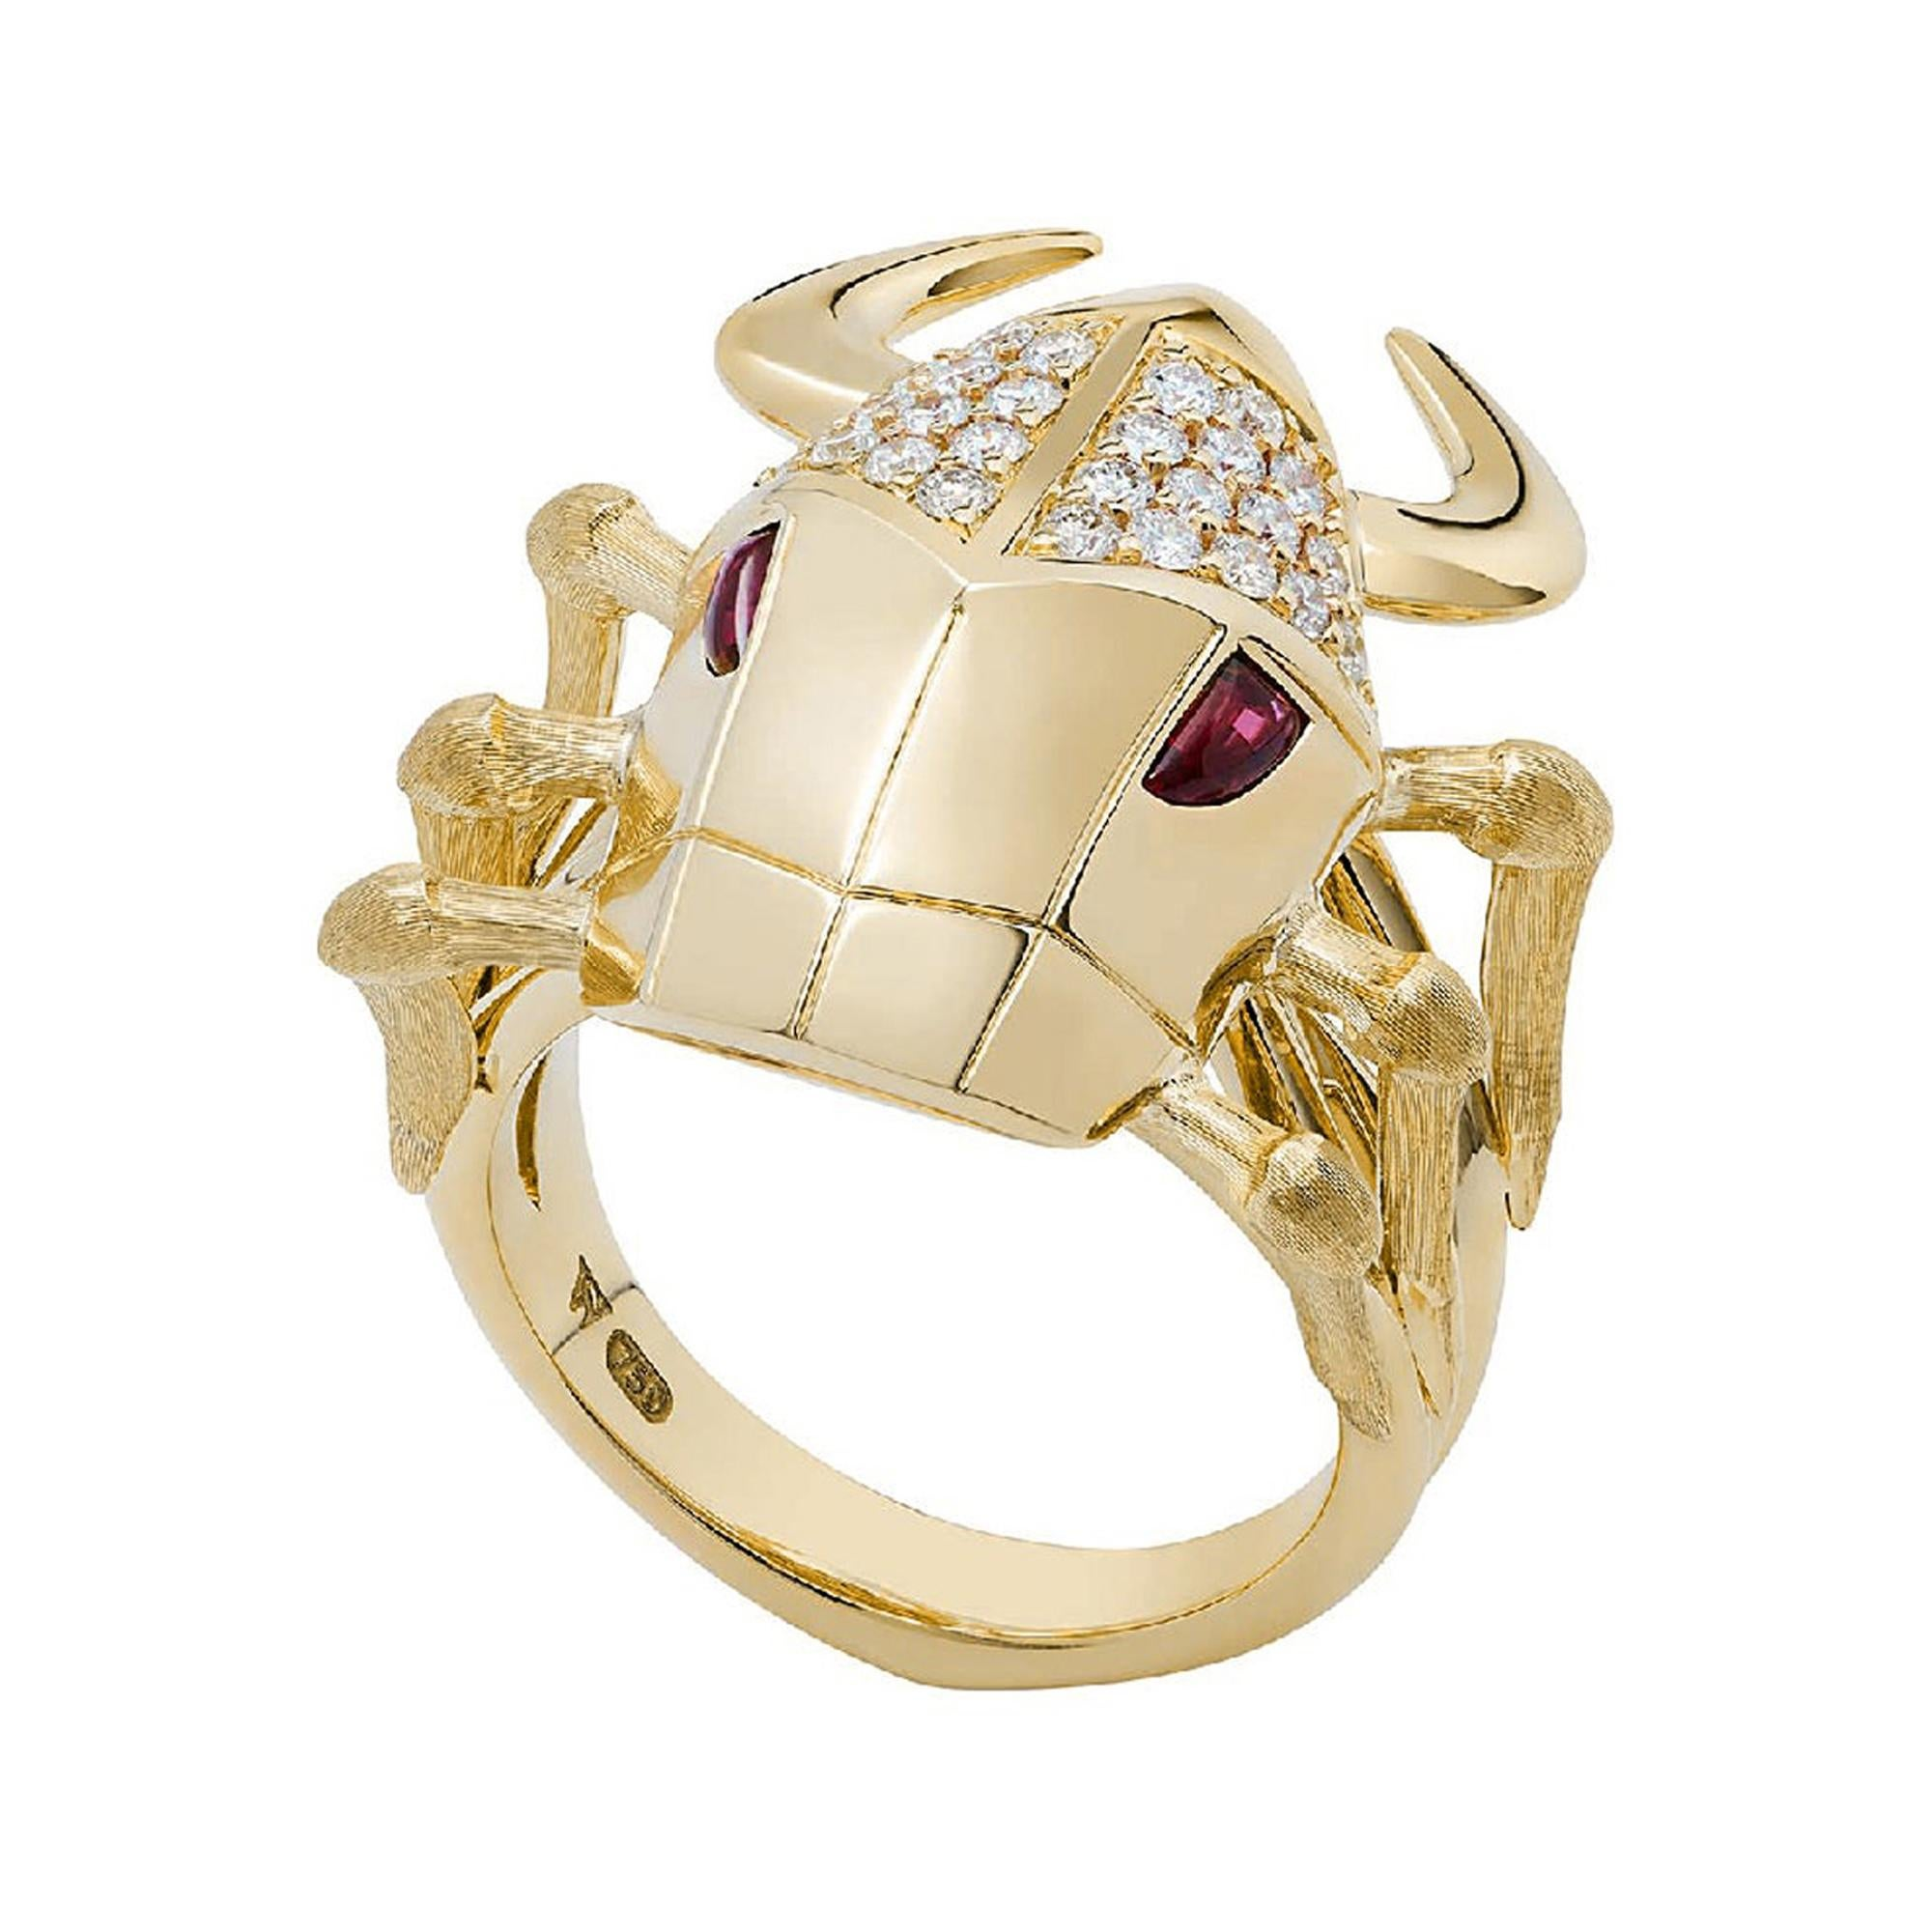 Stephen Webster Jitterbug Toro Beetle 18 Carat Gold with Cabochon Ruby Eyes Ring